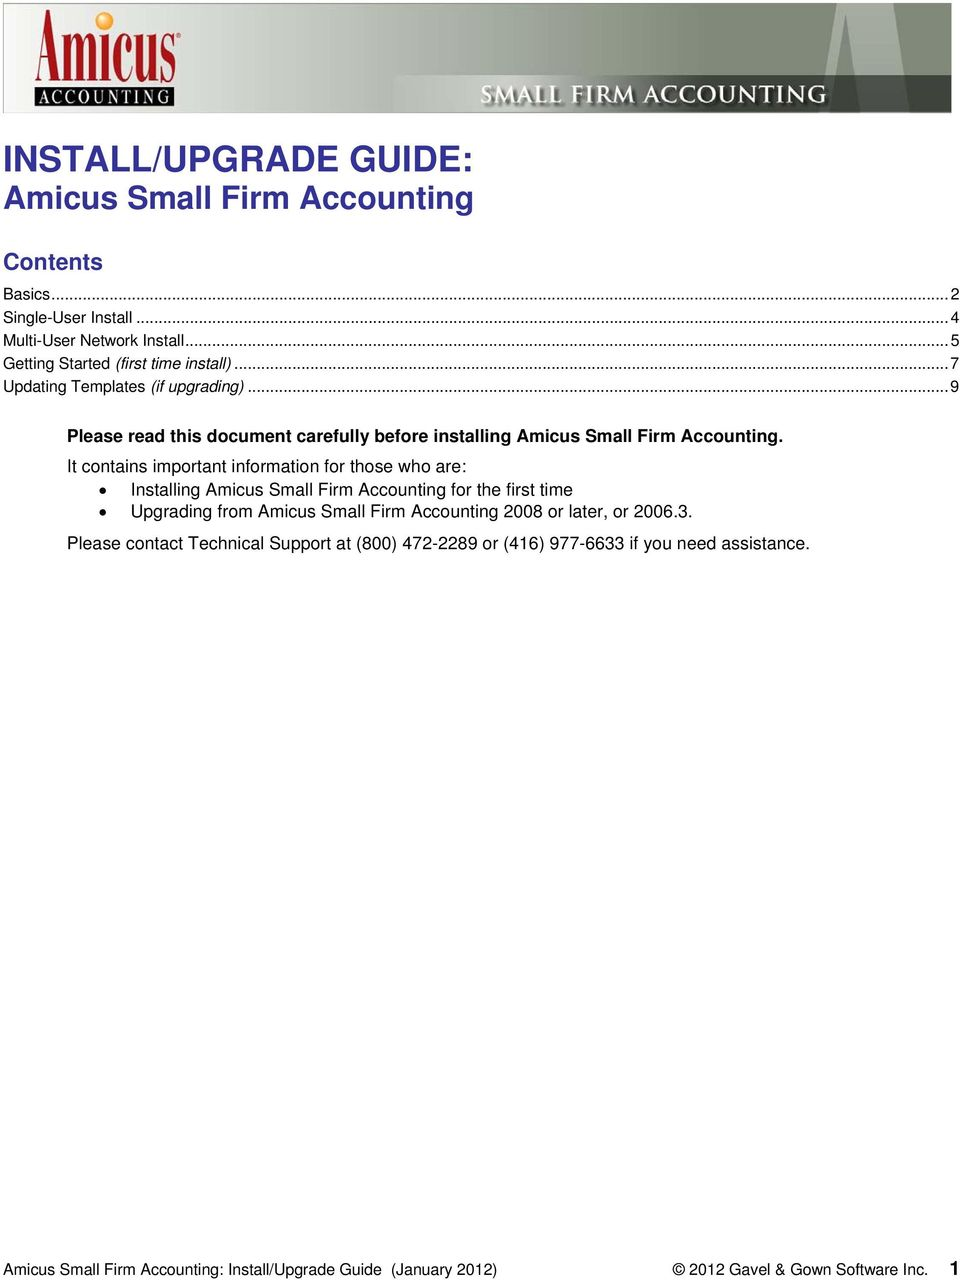 It contains important information for those who are: Installing Amicus Small Firm Accounting for the first time Upgrading from Amicus Small Firm Accounting 2008 or